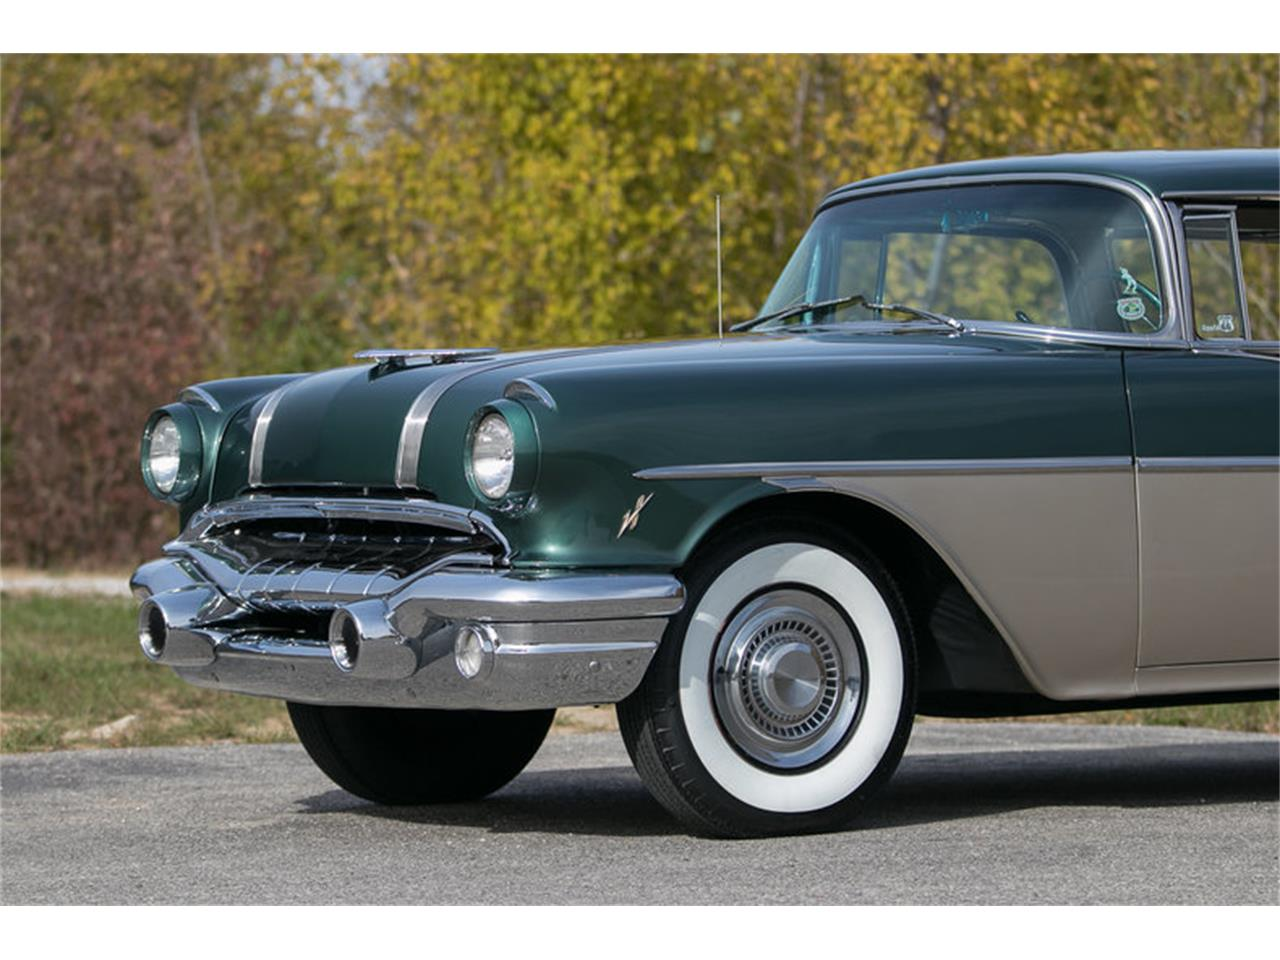 Large Picture of 1956 Pontiac Star Chief located in St. Charles Missouri - $49,995.00 Offered by Fast Lane Classic Cars Inc. - M8Z0